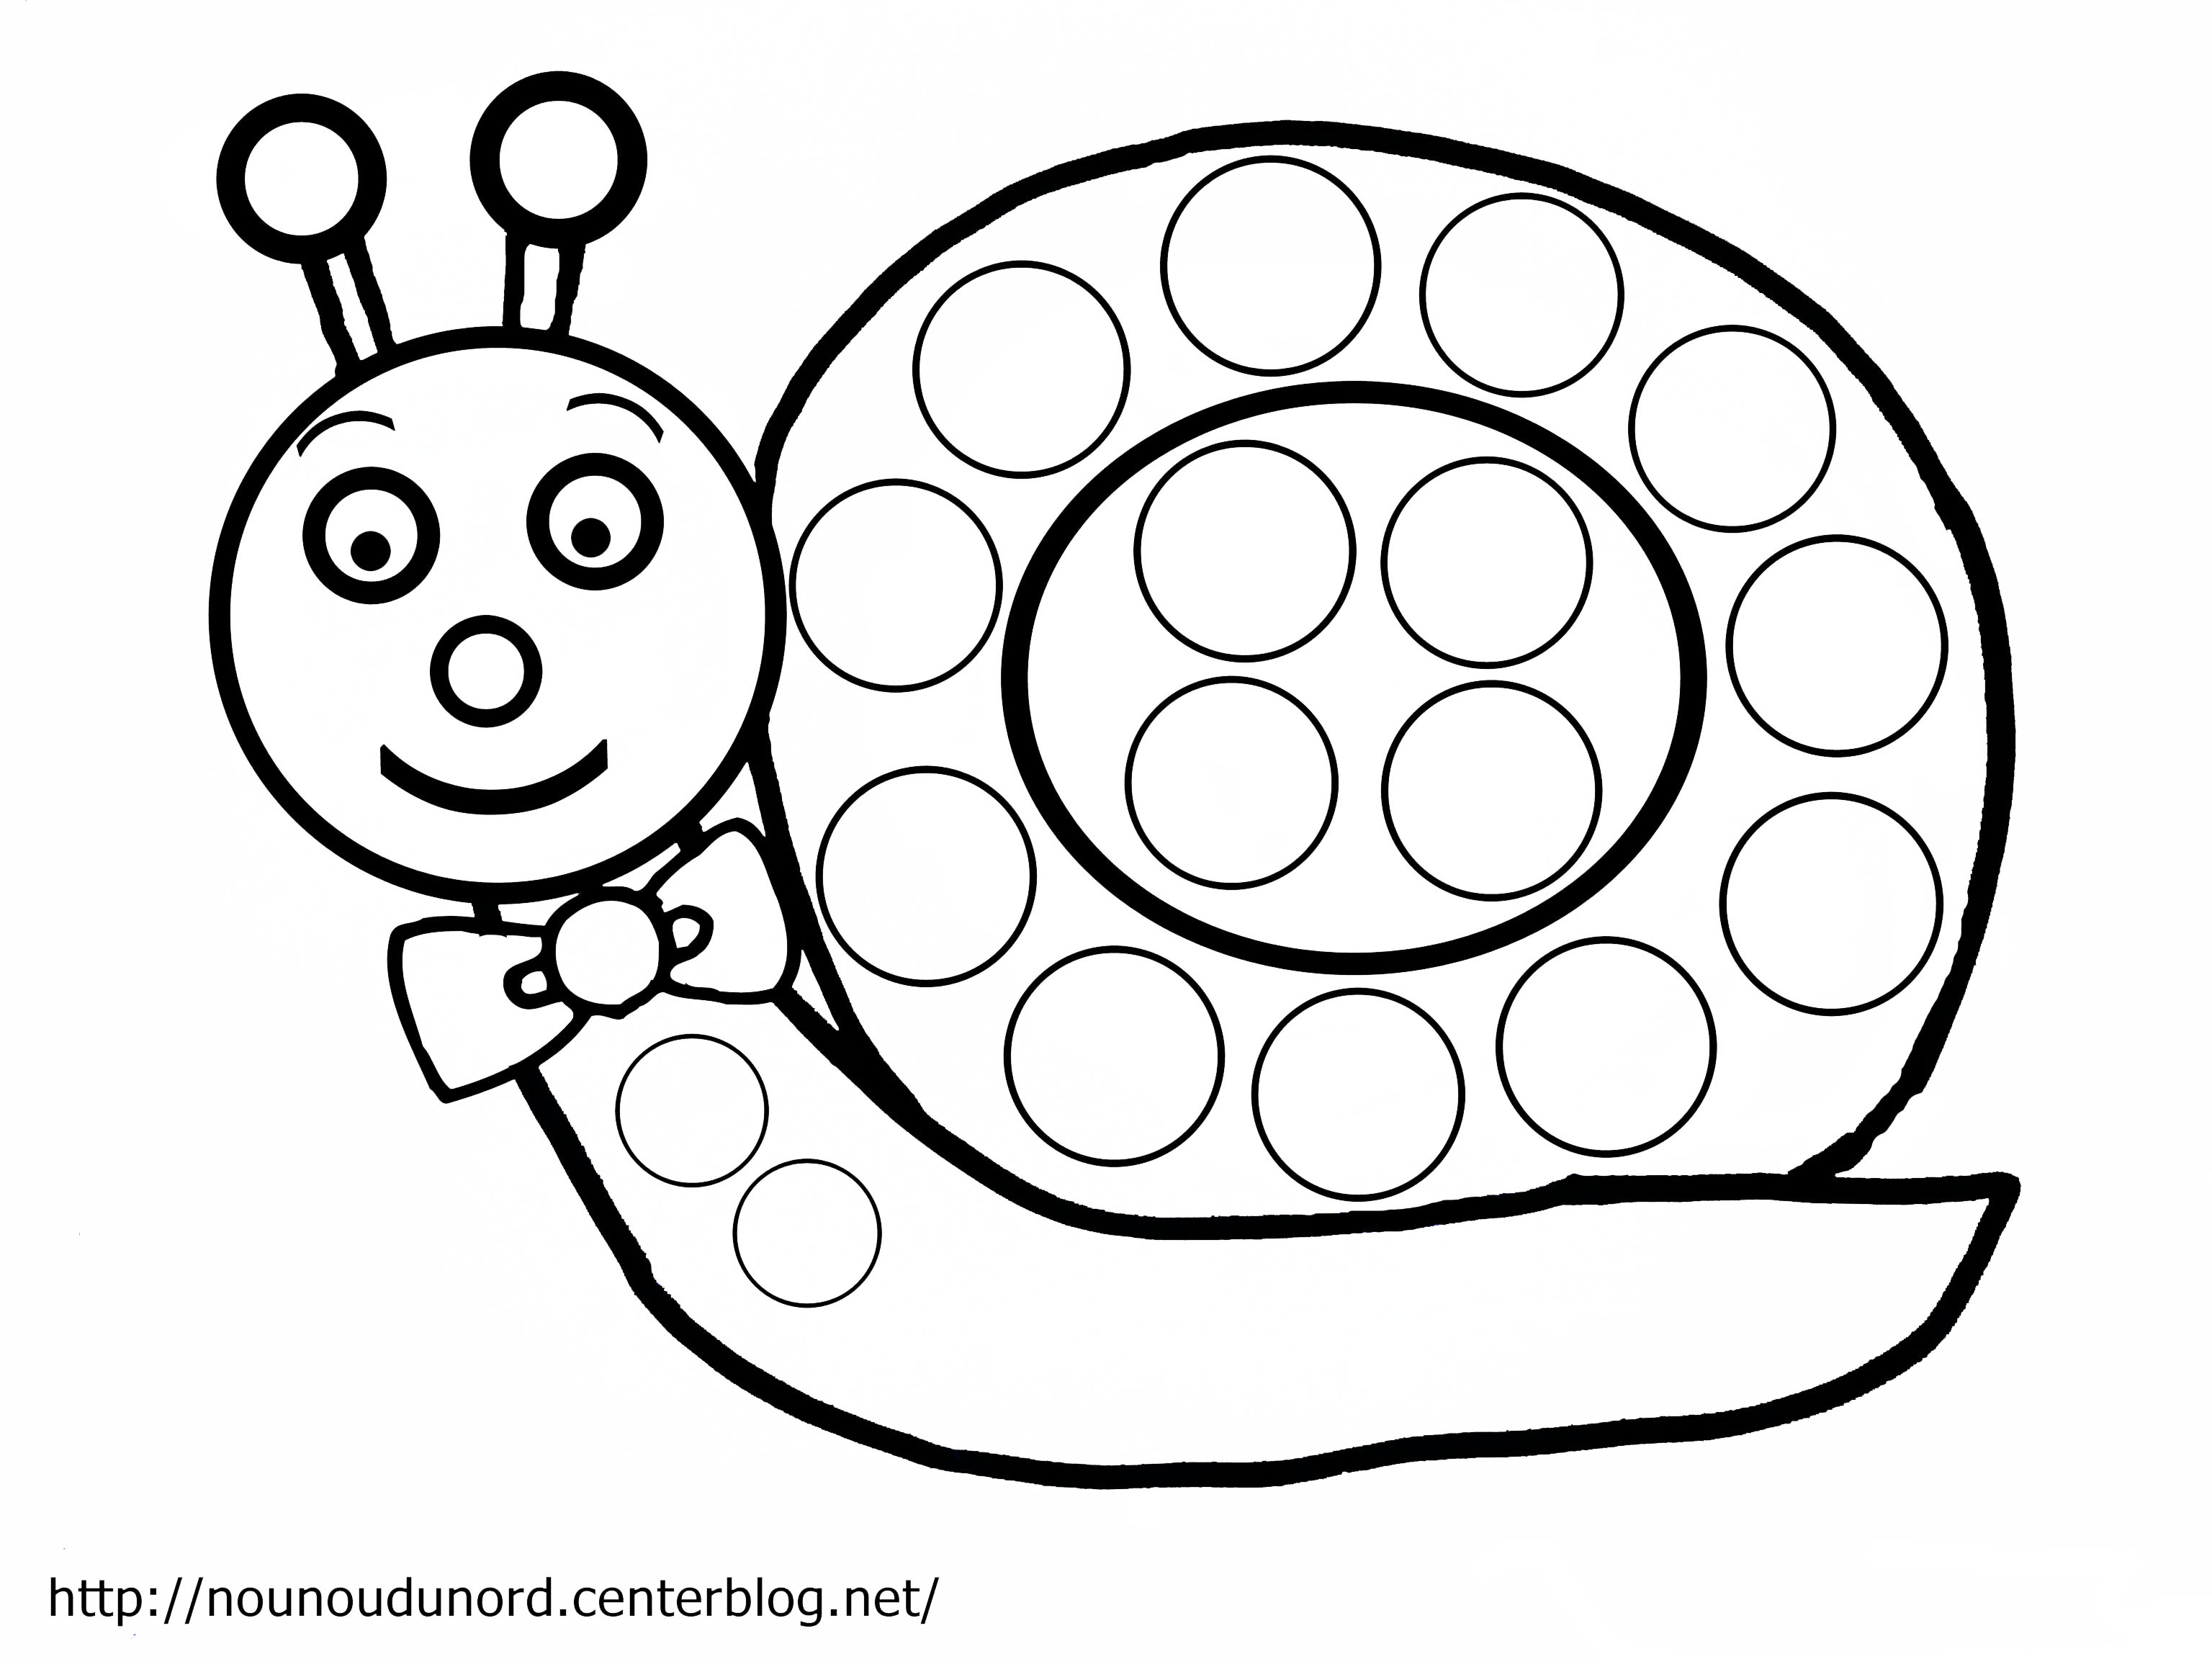 120 Dessins De Coloriage Escargot À Imprimer avec Hugo L'Escargot Coloriage